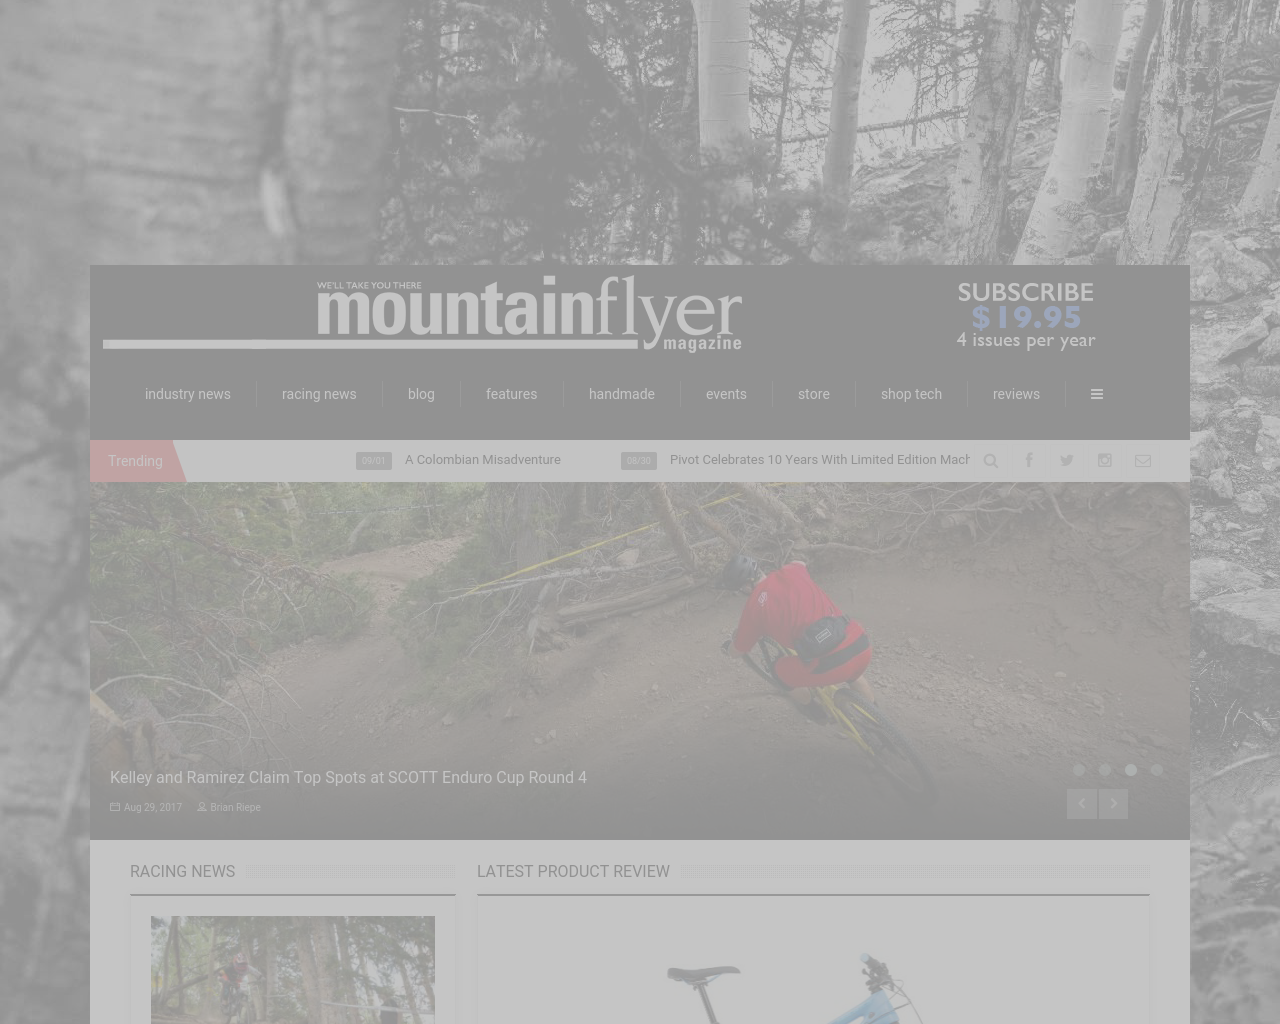 Mountain-Flyer-Magazine-Advertising-Reviews-Pricing